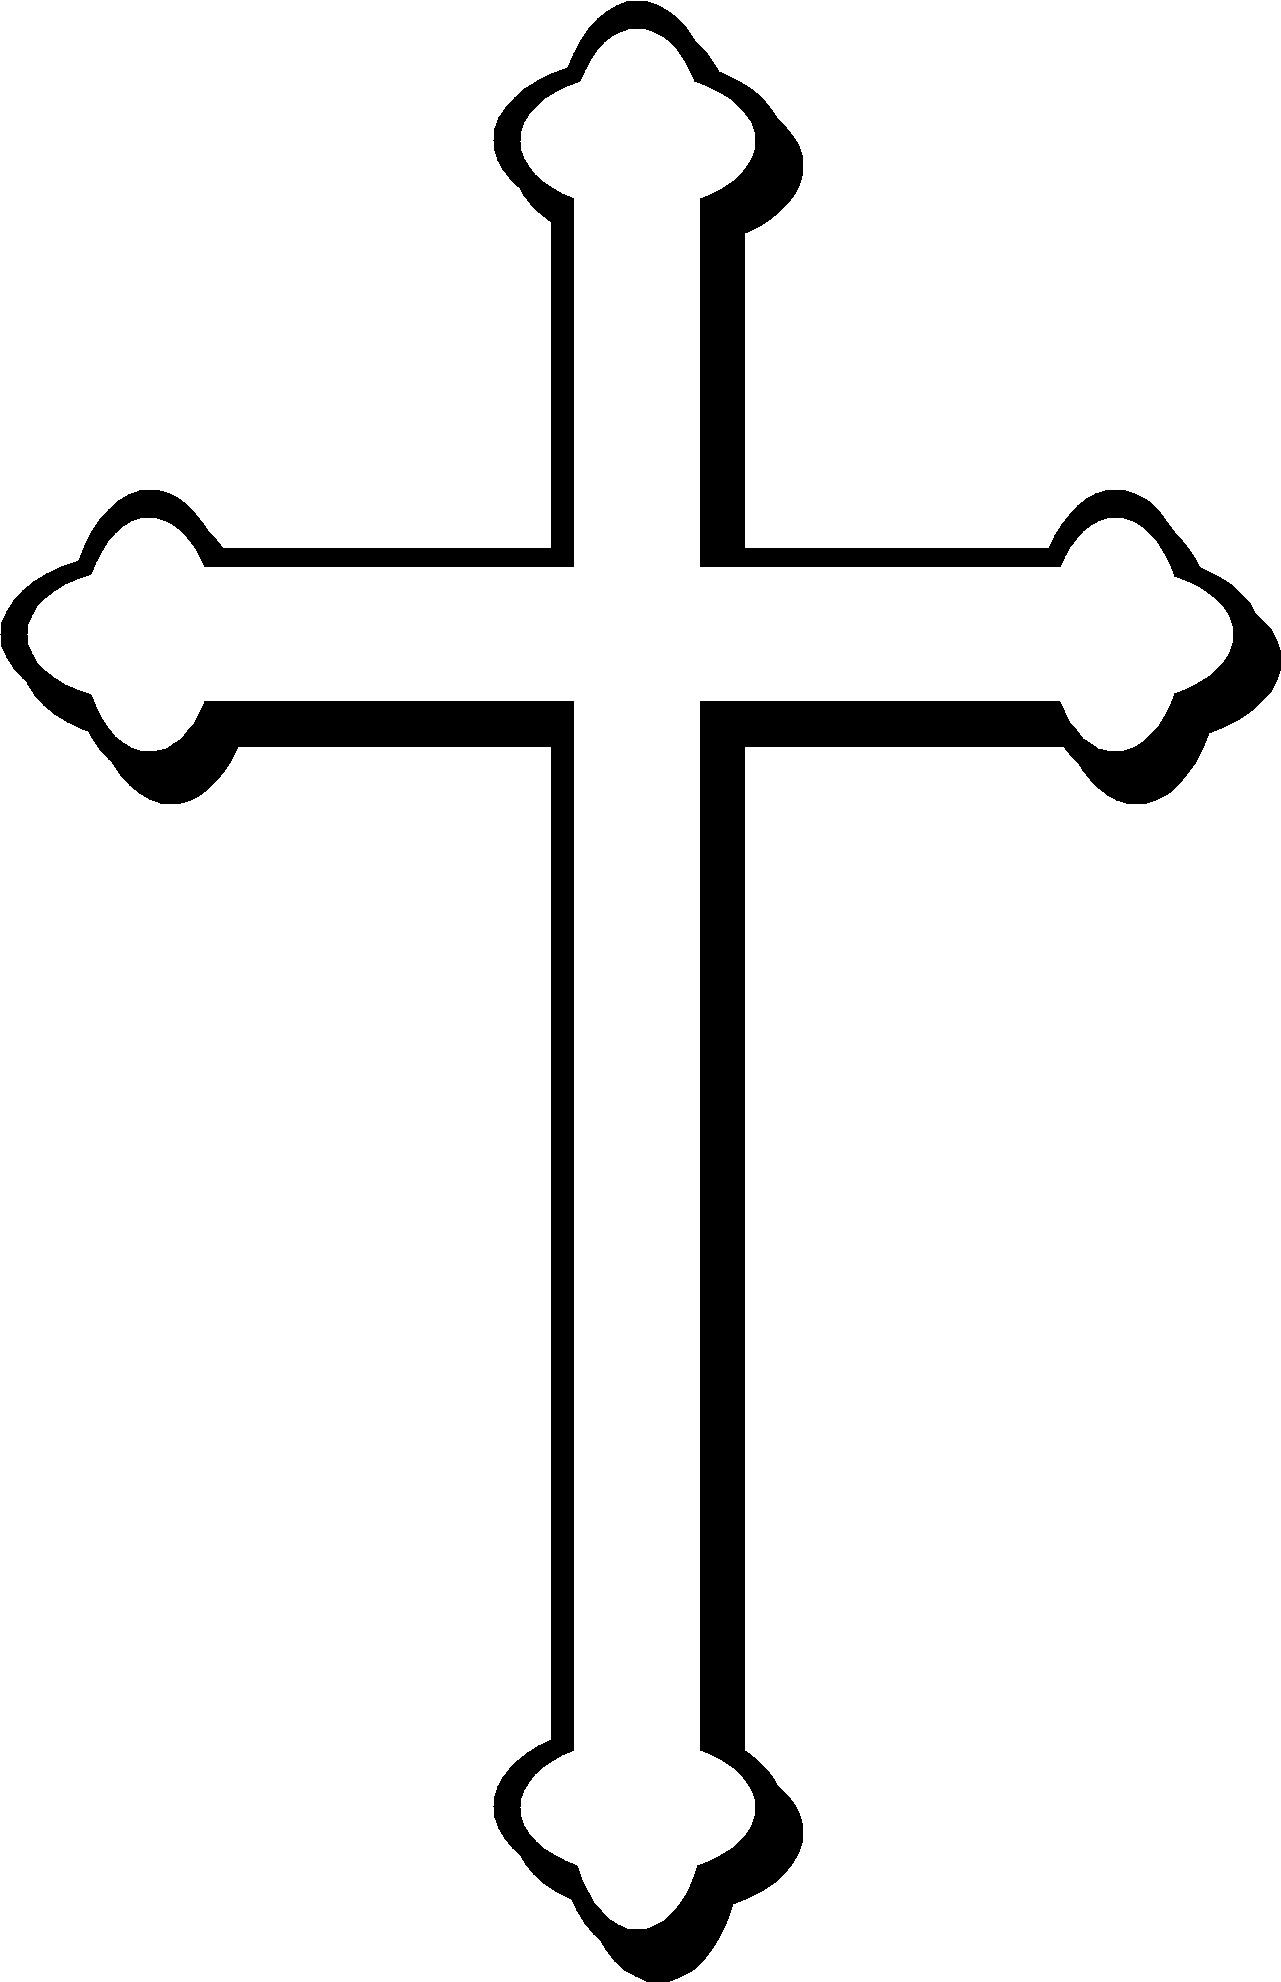 Crucifix clipart catholic symbol. Protestant those who protested